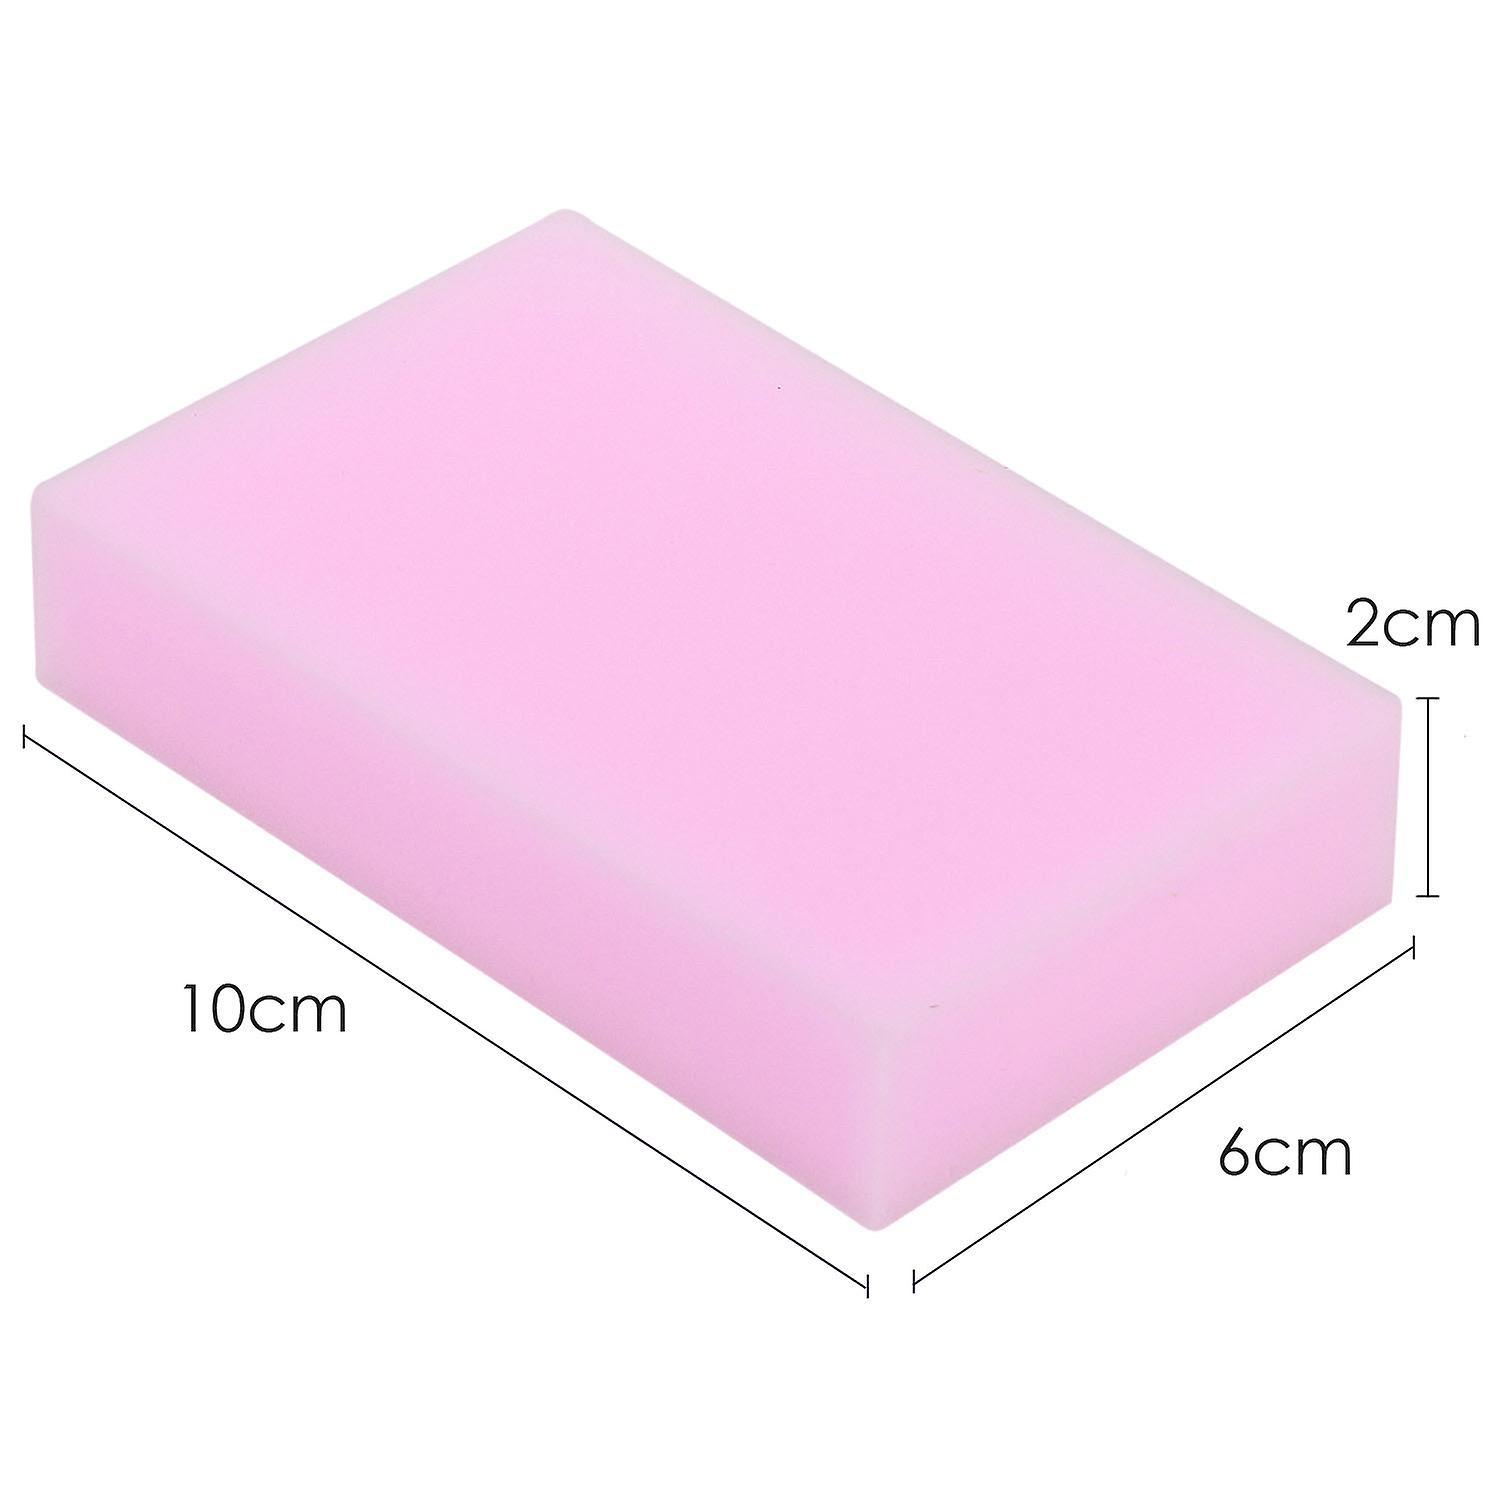 TRIXES Magic Sponges Pack of 30 for Chemical Free Mark Removal Precision Household Cleaning Professional Stain Removals